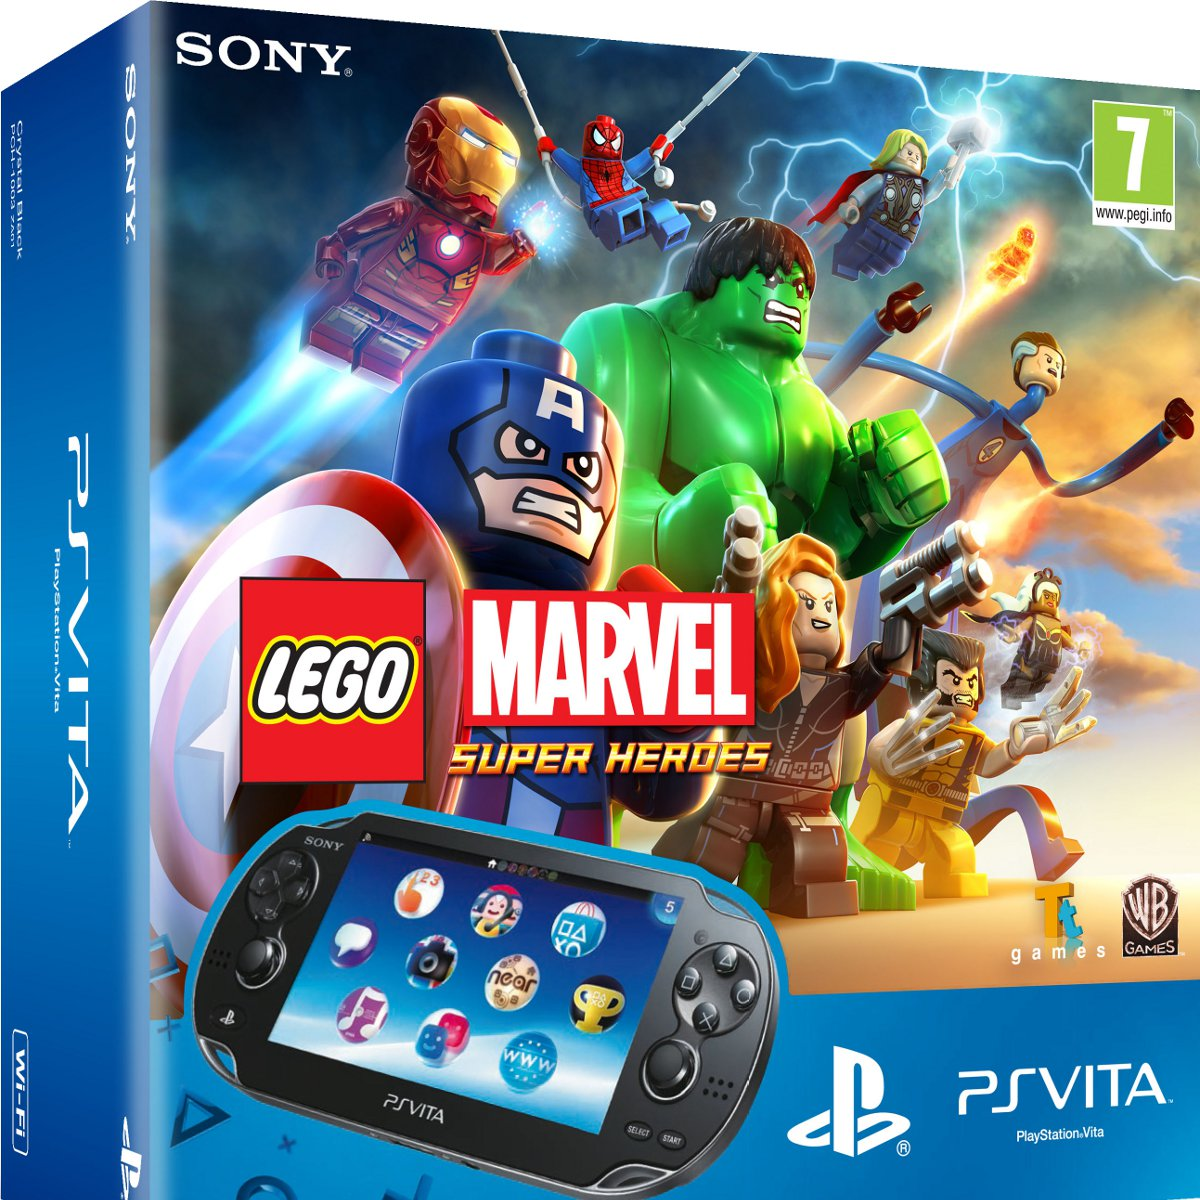 sony ps vita wifi noire lego marvel super heroes carte memoire 8 go sony. Black Bedroom Furniture Sets. Home Design Ideas